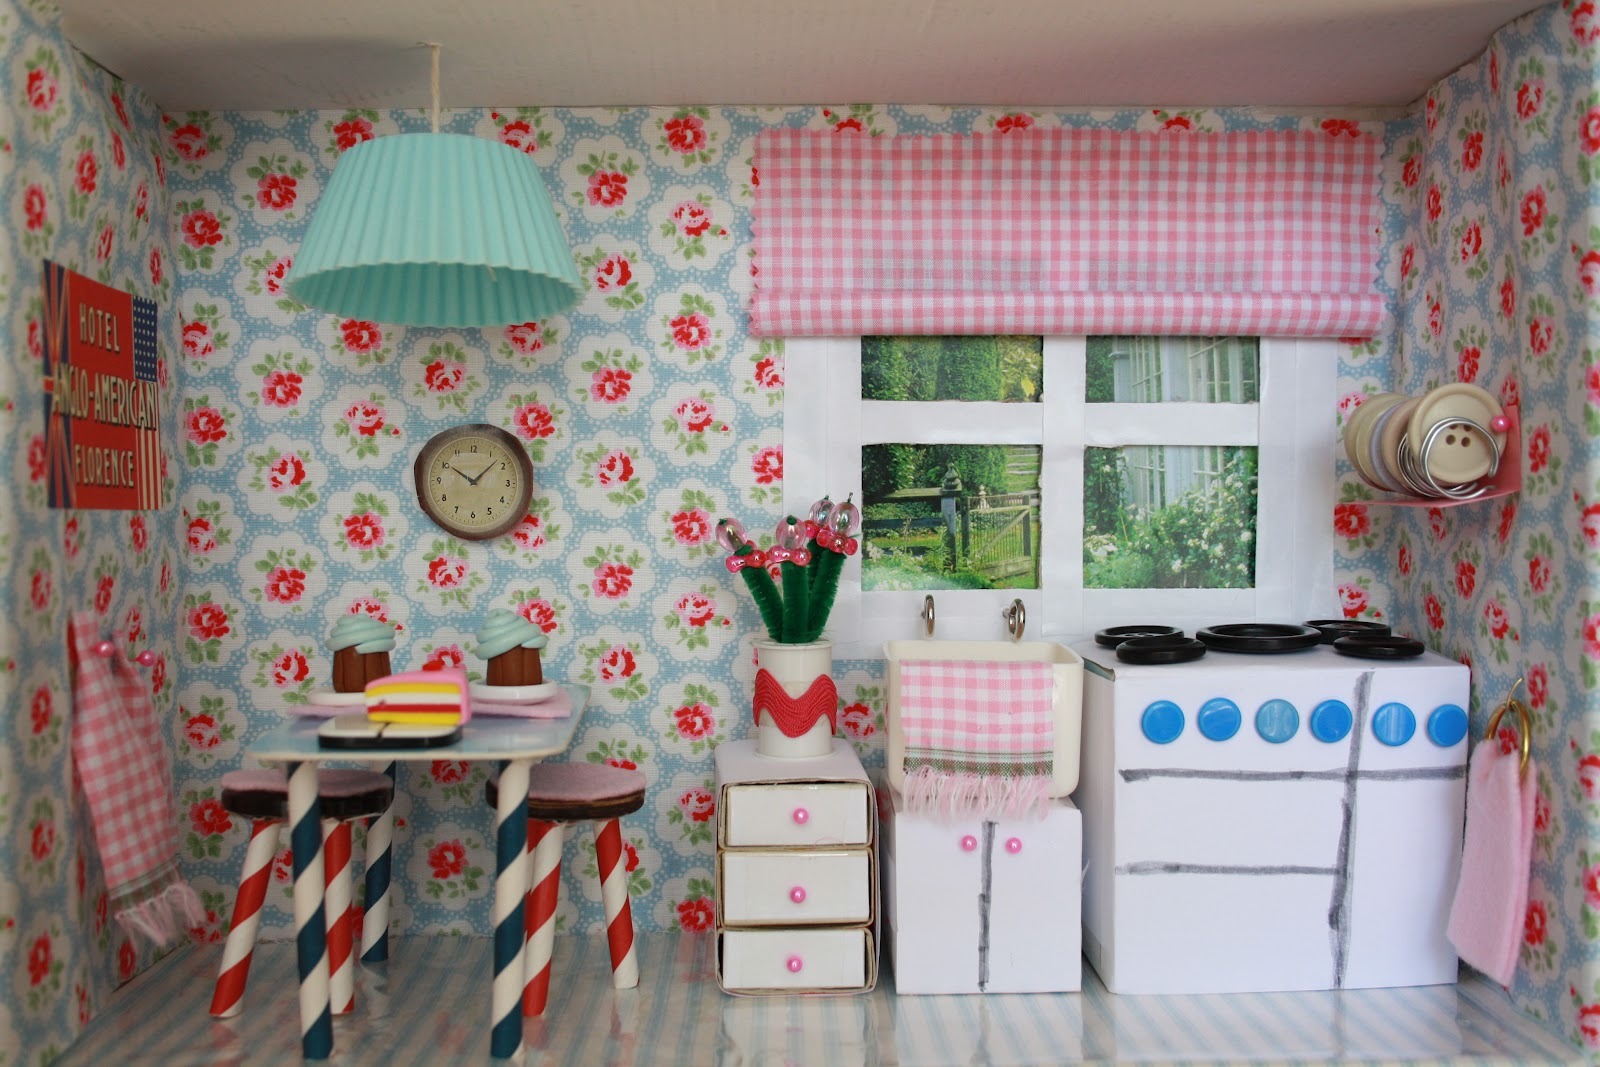 Tales from a happy house a shoebox kitchen for a little for Cath kidston style bedroom ideas